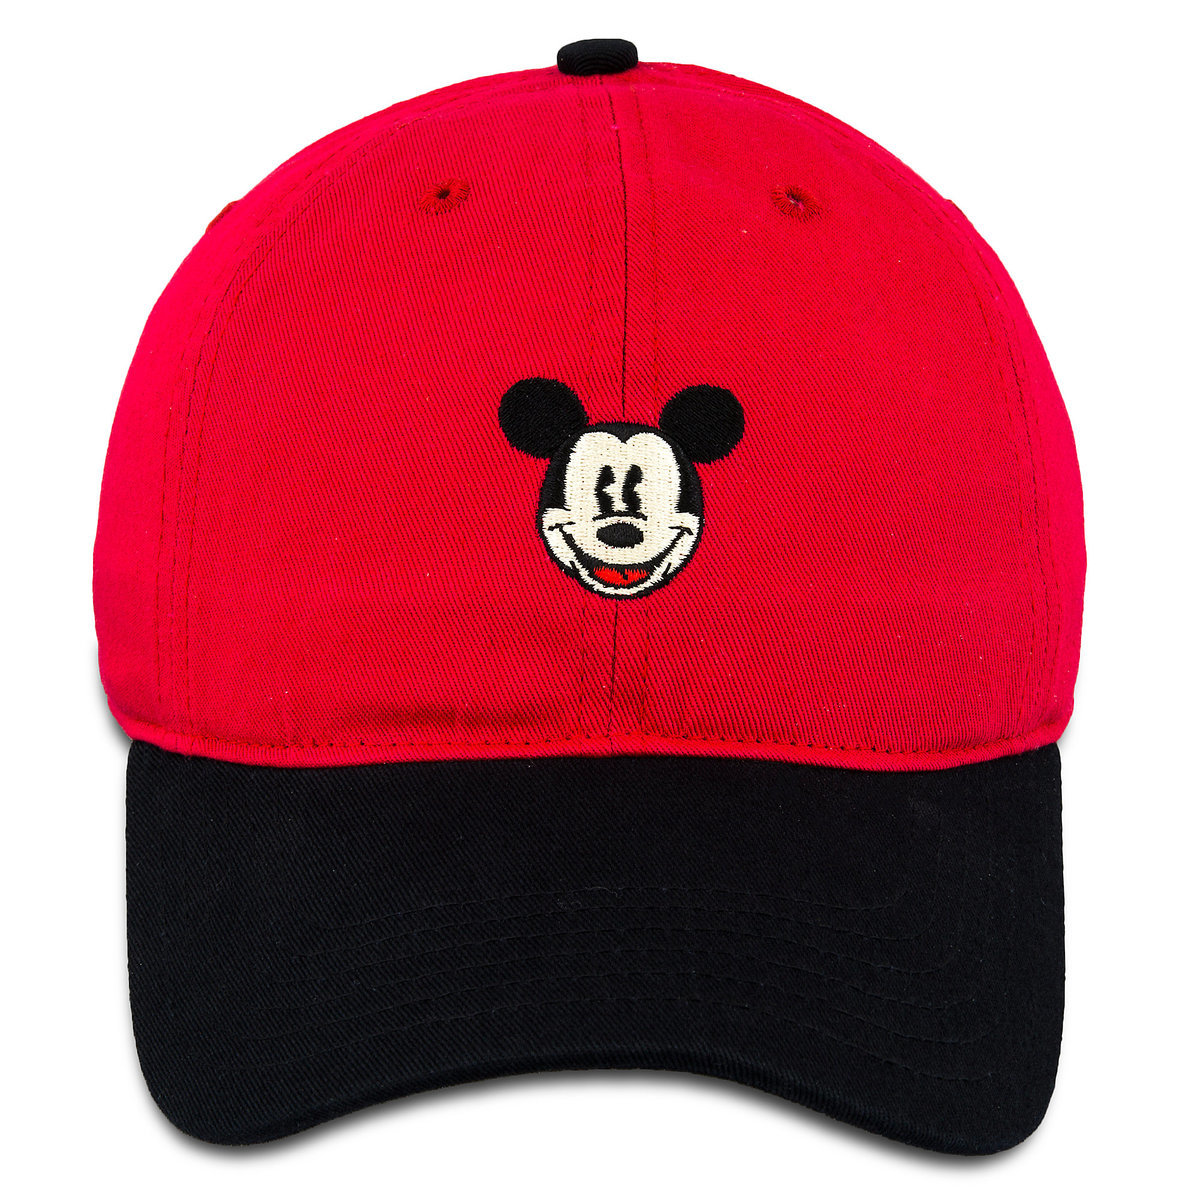 Add to My Lists. Disney Baseball Cap - Mickey Mouse Two-Tone - Red Black 0c9031d326d